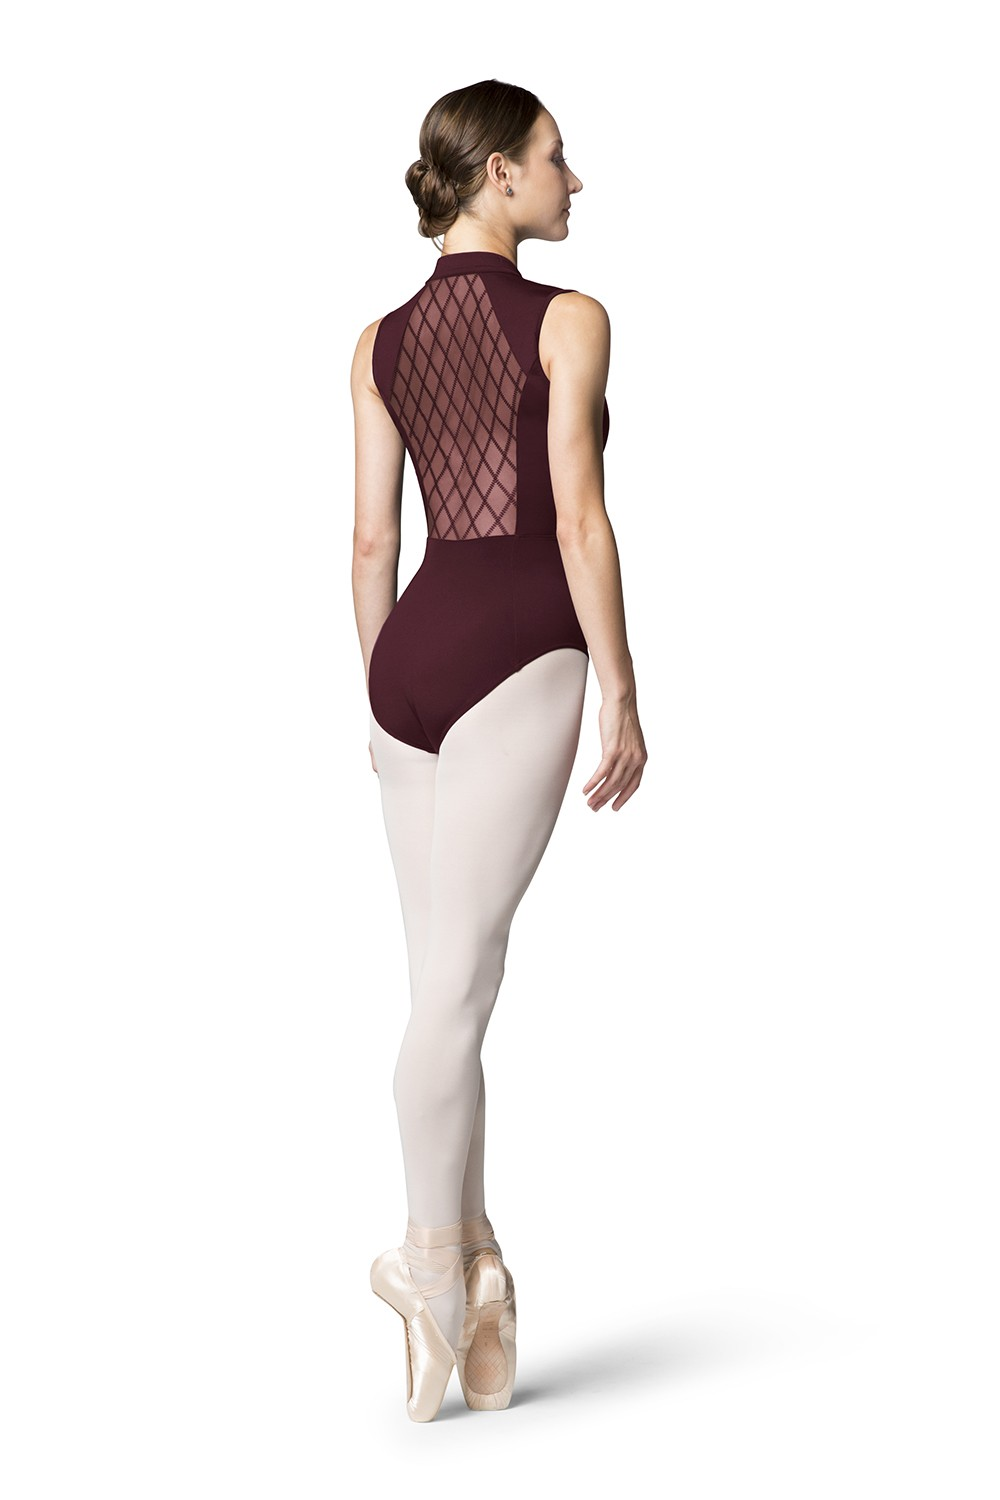 Aine Women's Dance Leotards